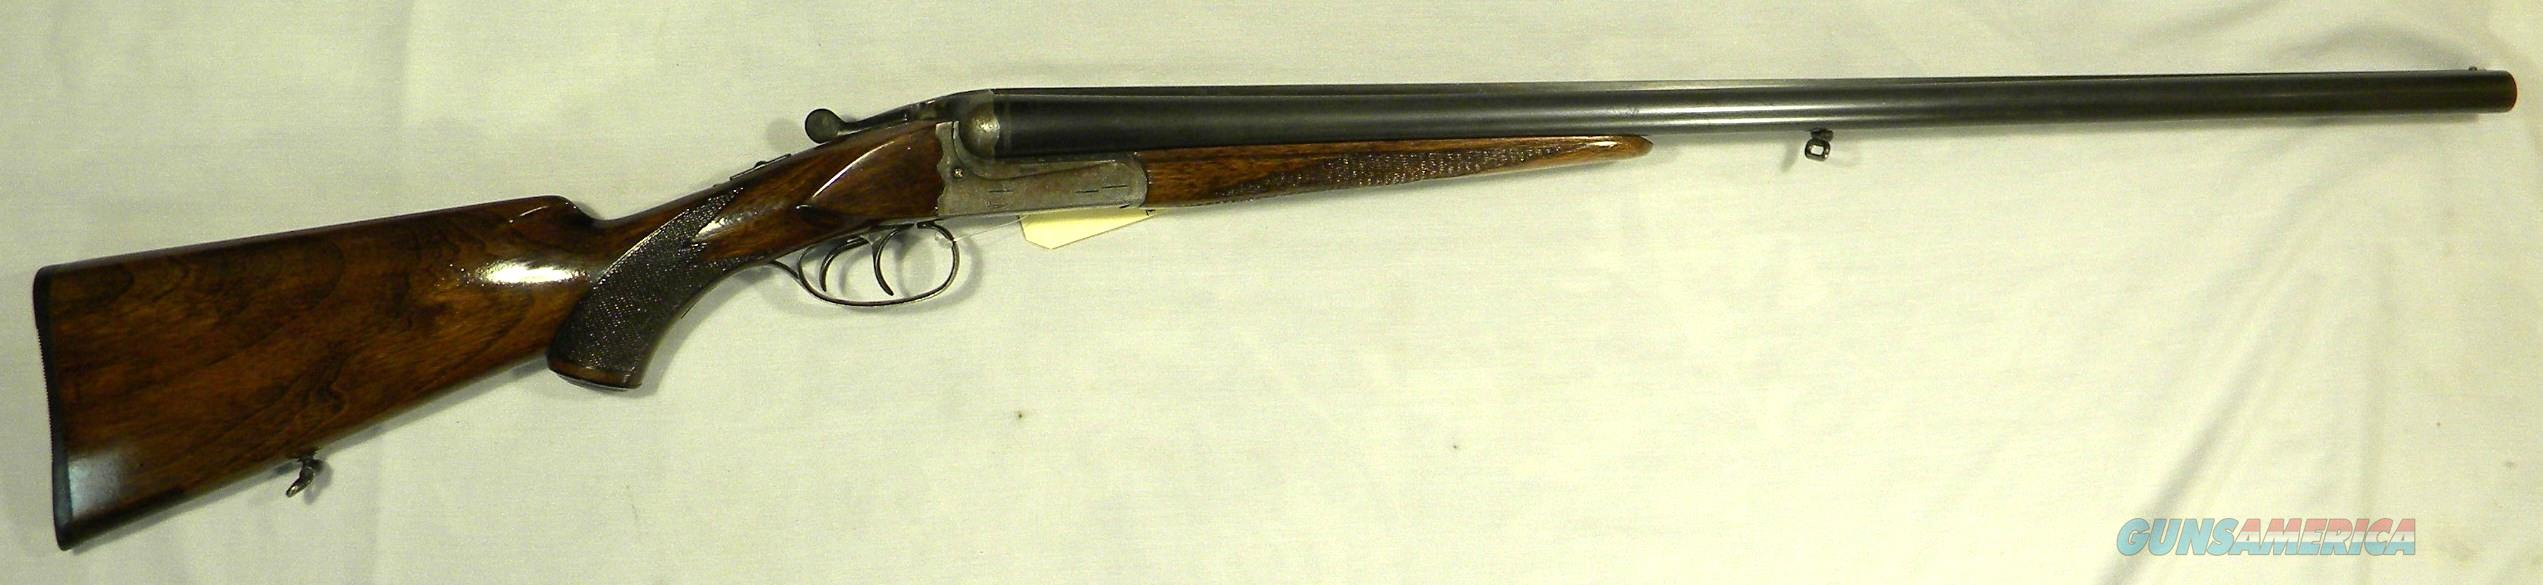 German 12 Gauge Side-By-Side Shotgun, Custom Built  Guns > Shotguns > G Misc Shotguns